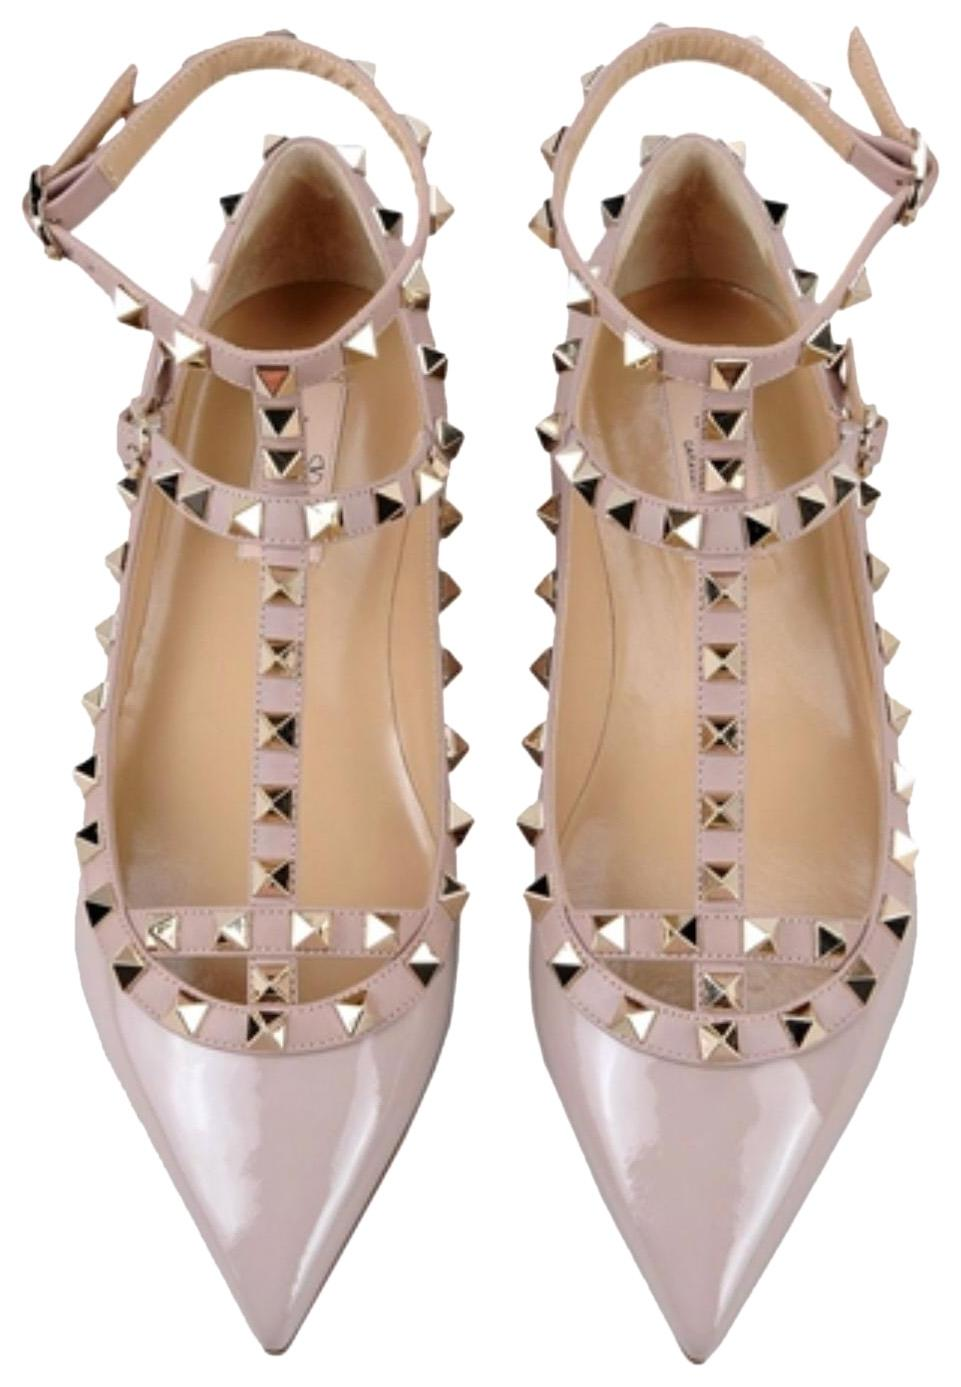 Valentino Patent Leather Shiny Flats Size US 6 Regular (M, B)